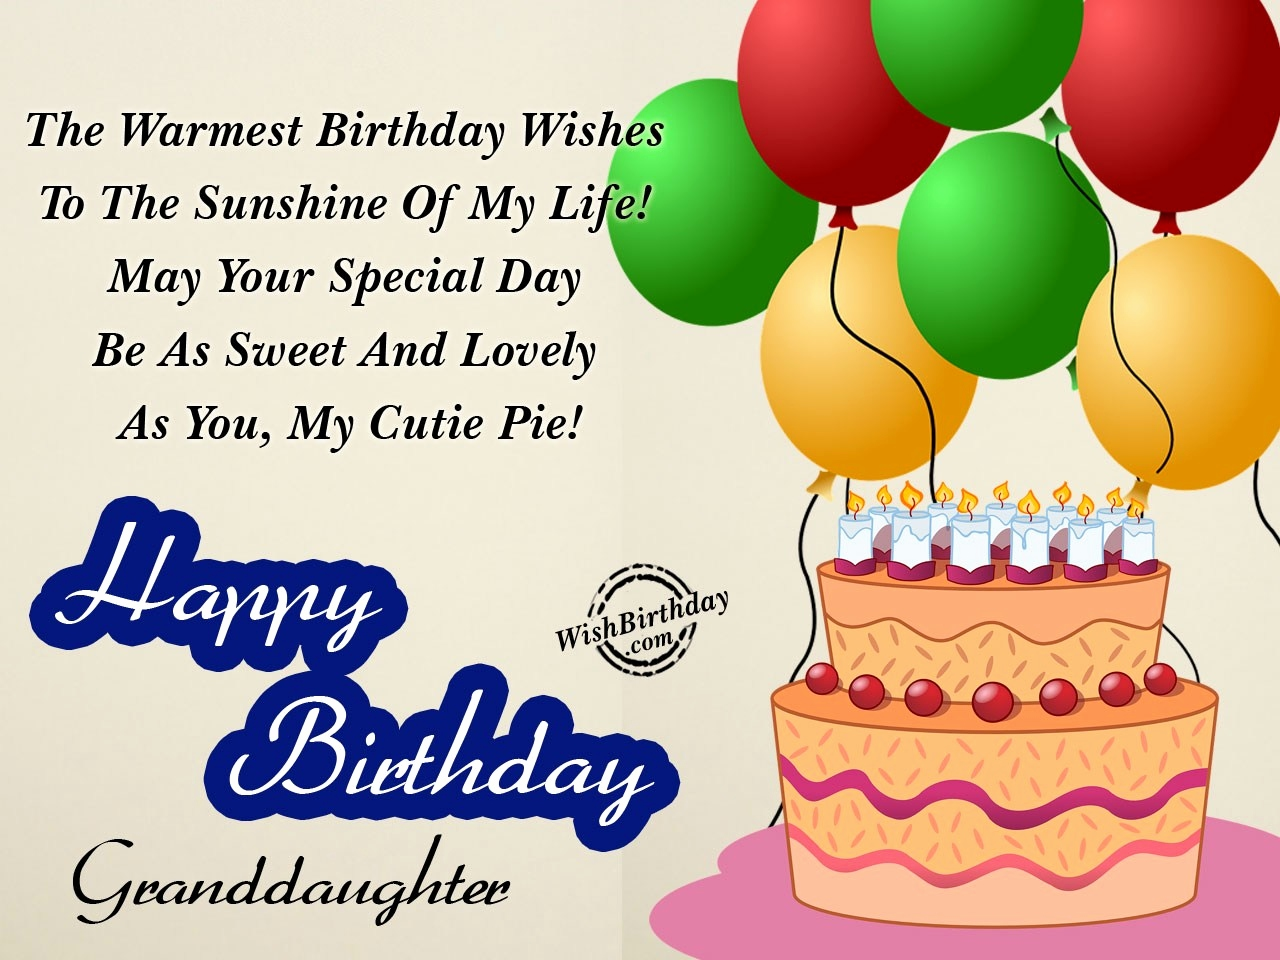 birthday message for a 13 year old boy ; happy-13th-birthday-quotes-beautiful-birthday-wishes-for-granddaughter-birthday-of-happy-13th-birthday-quotes